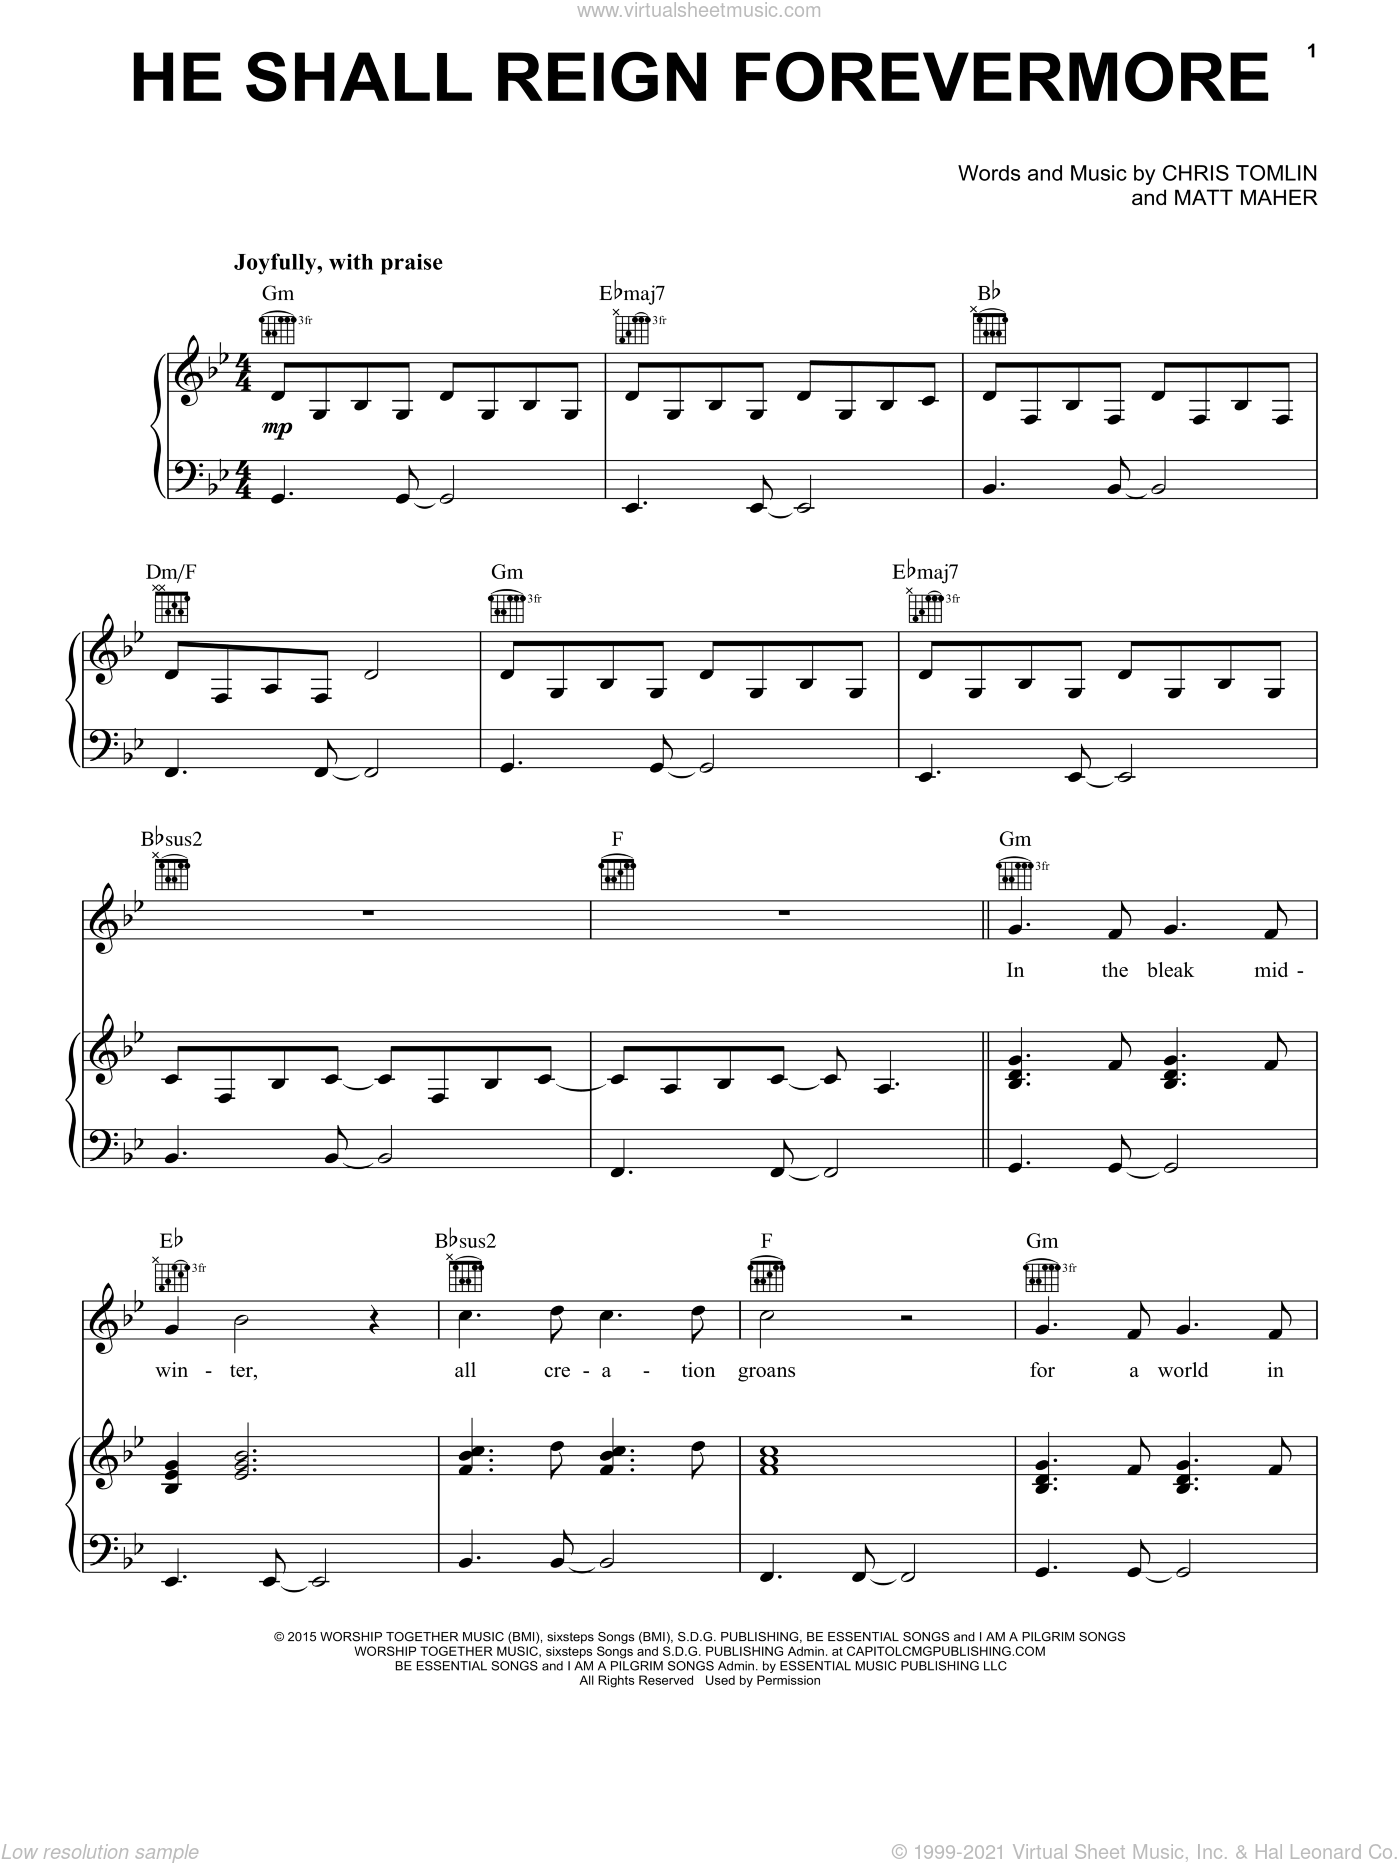 He Shall Reign Forevermore sheet music for voice, piano or guitar by Matt Maher and Chris Tomlin. Score Image Preview.